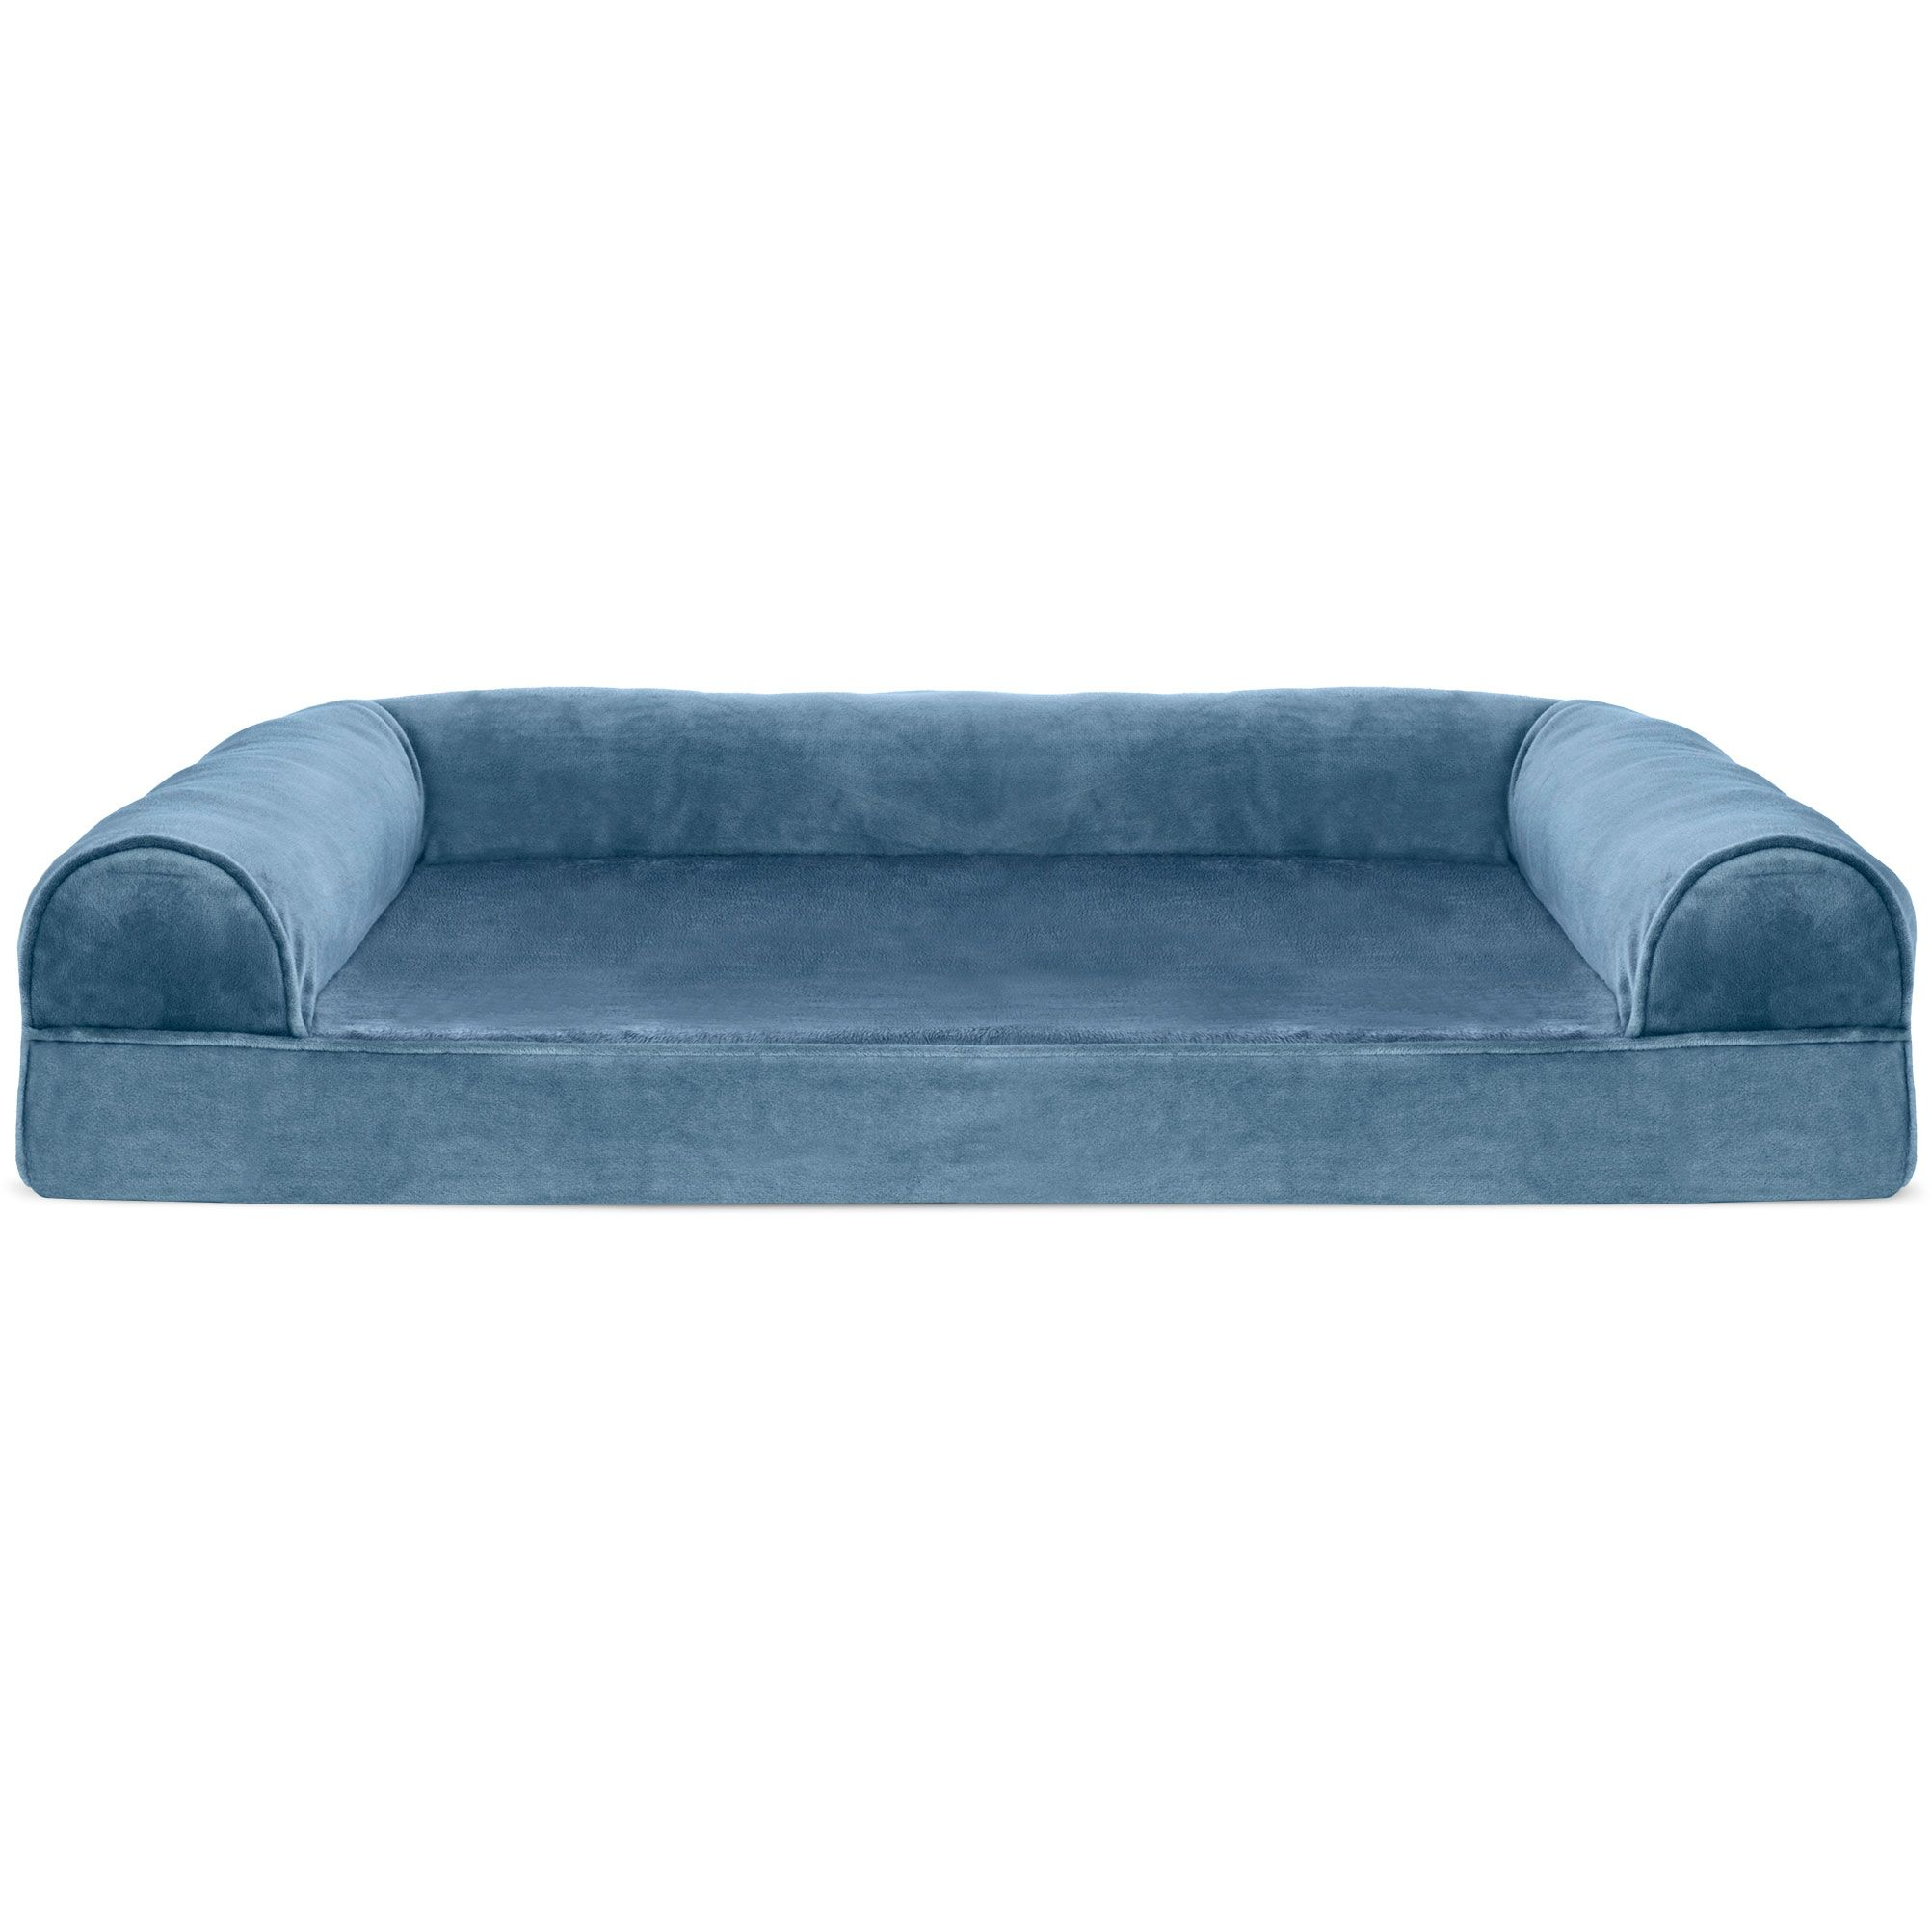 Caddy Faux Fur and Velvet Orthopedic Dog Sofa Color: Harbor Blue, Size: Extra Large (44